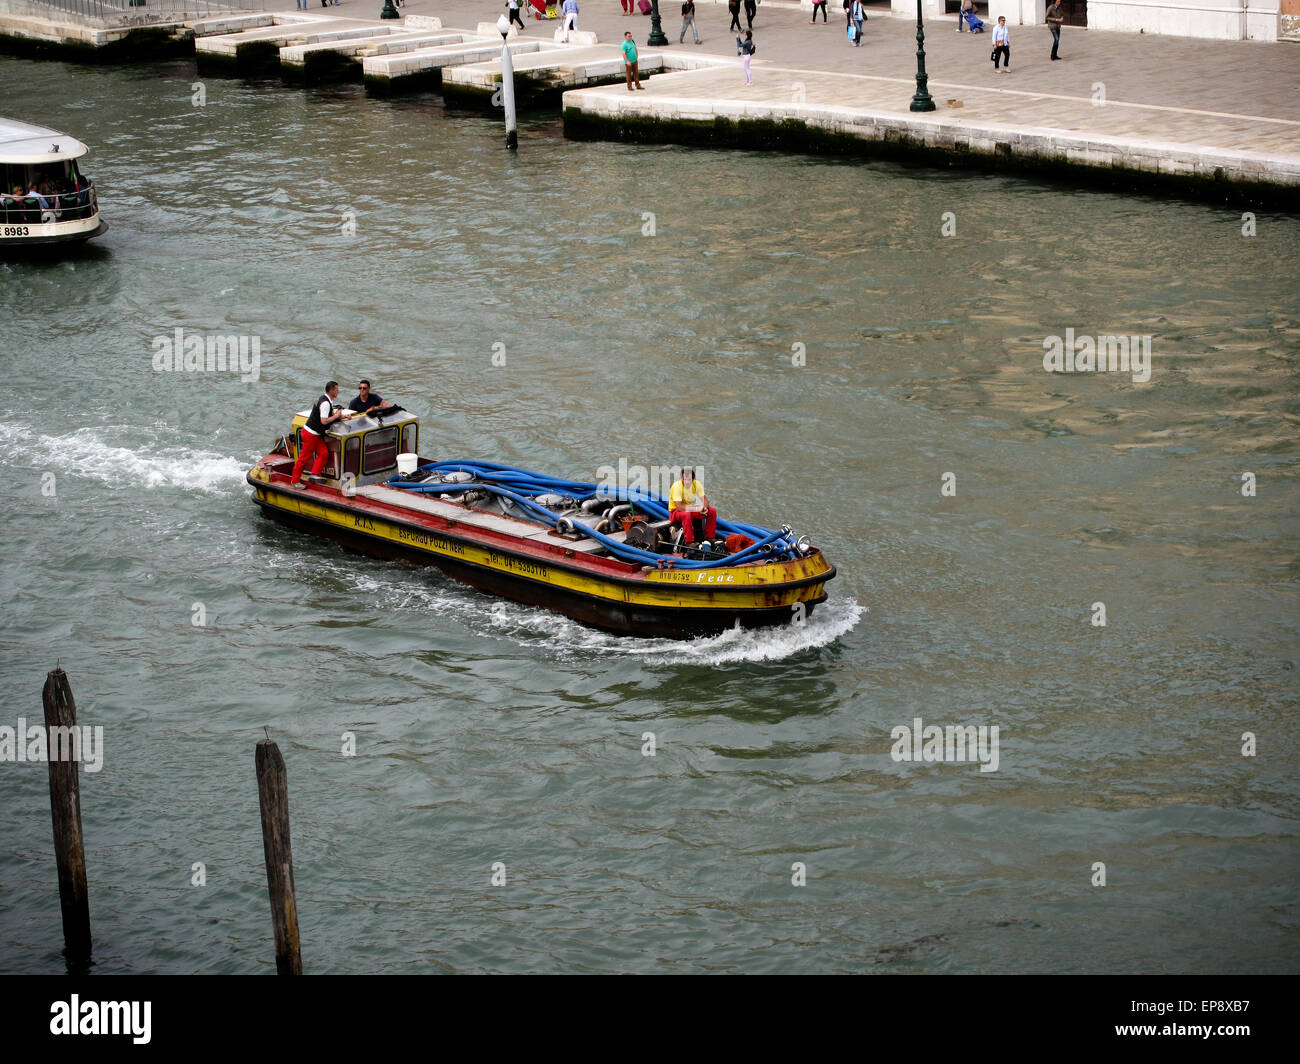 A fuel tanker on the Grand Canal in Venice - Stock Image